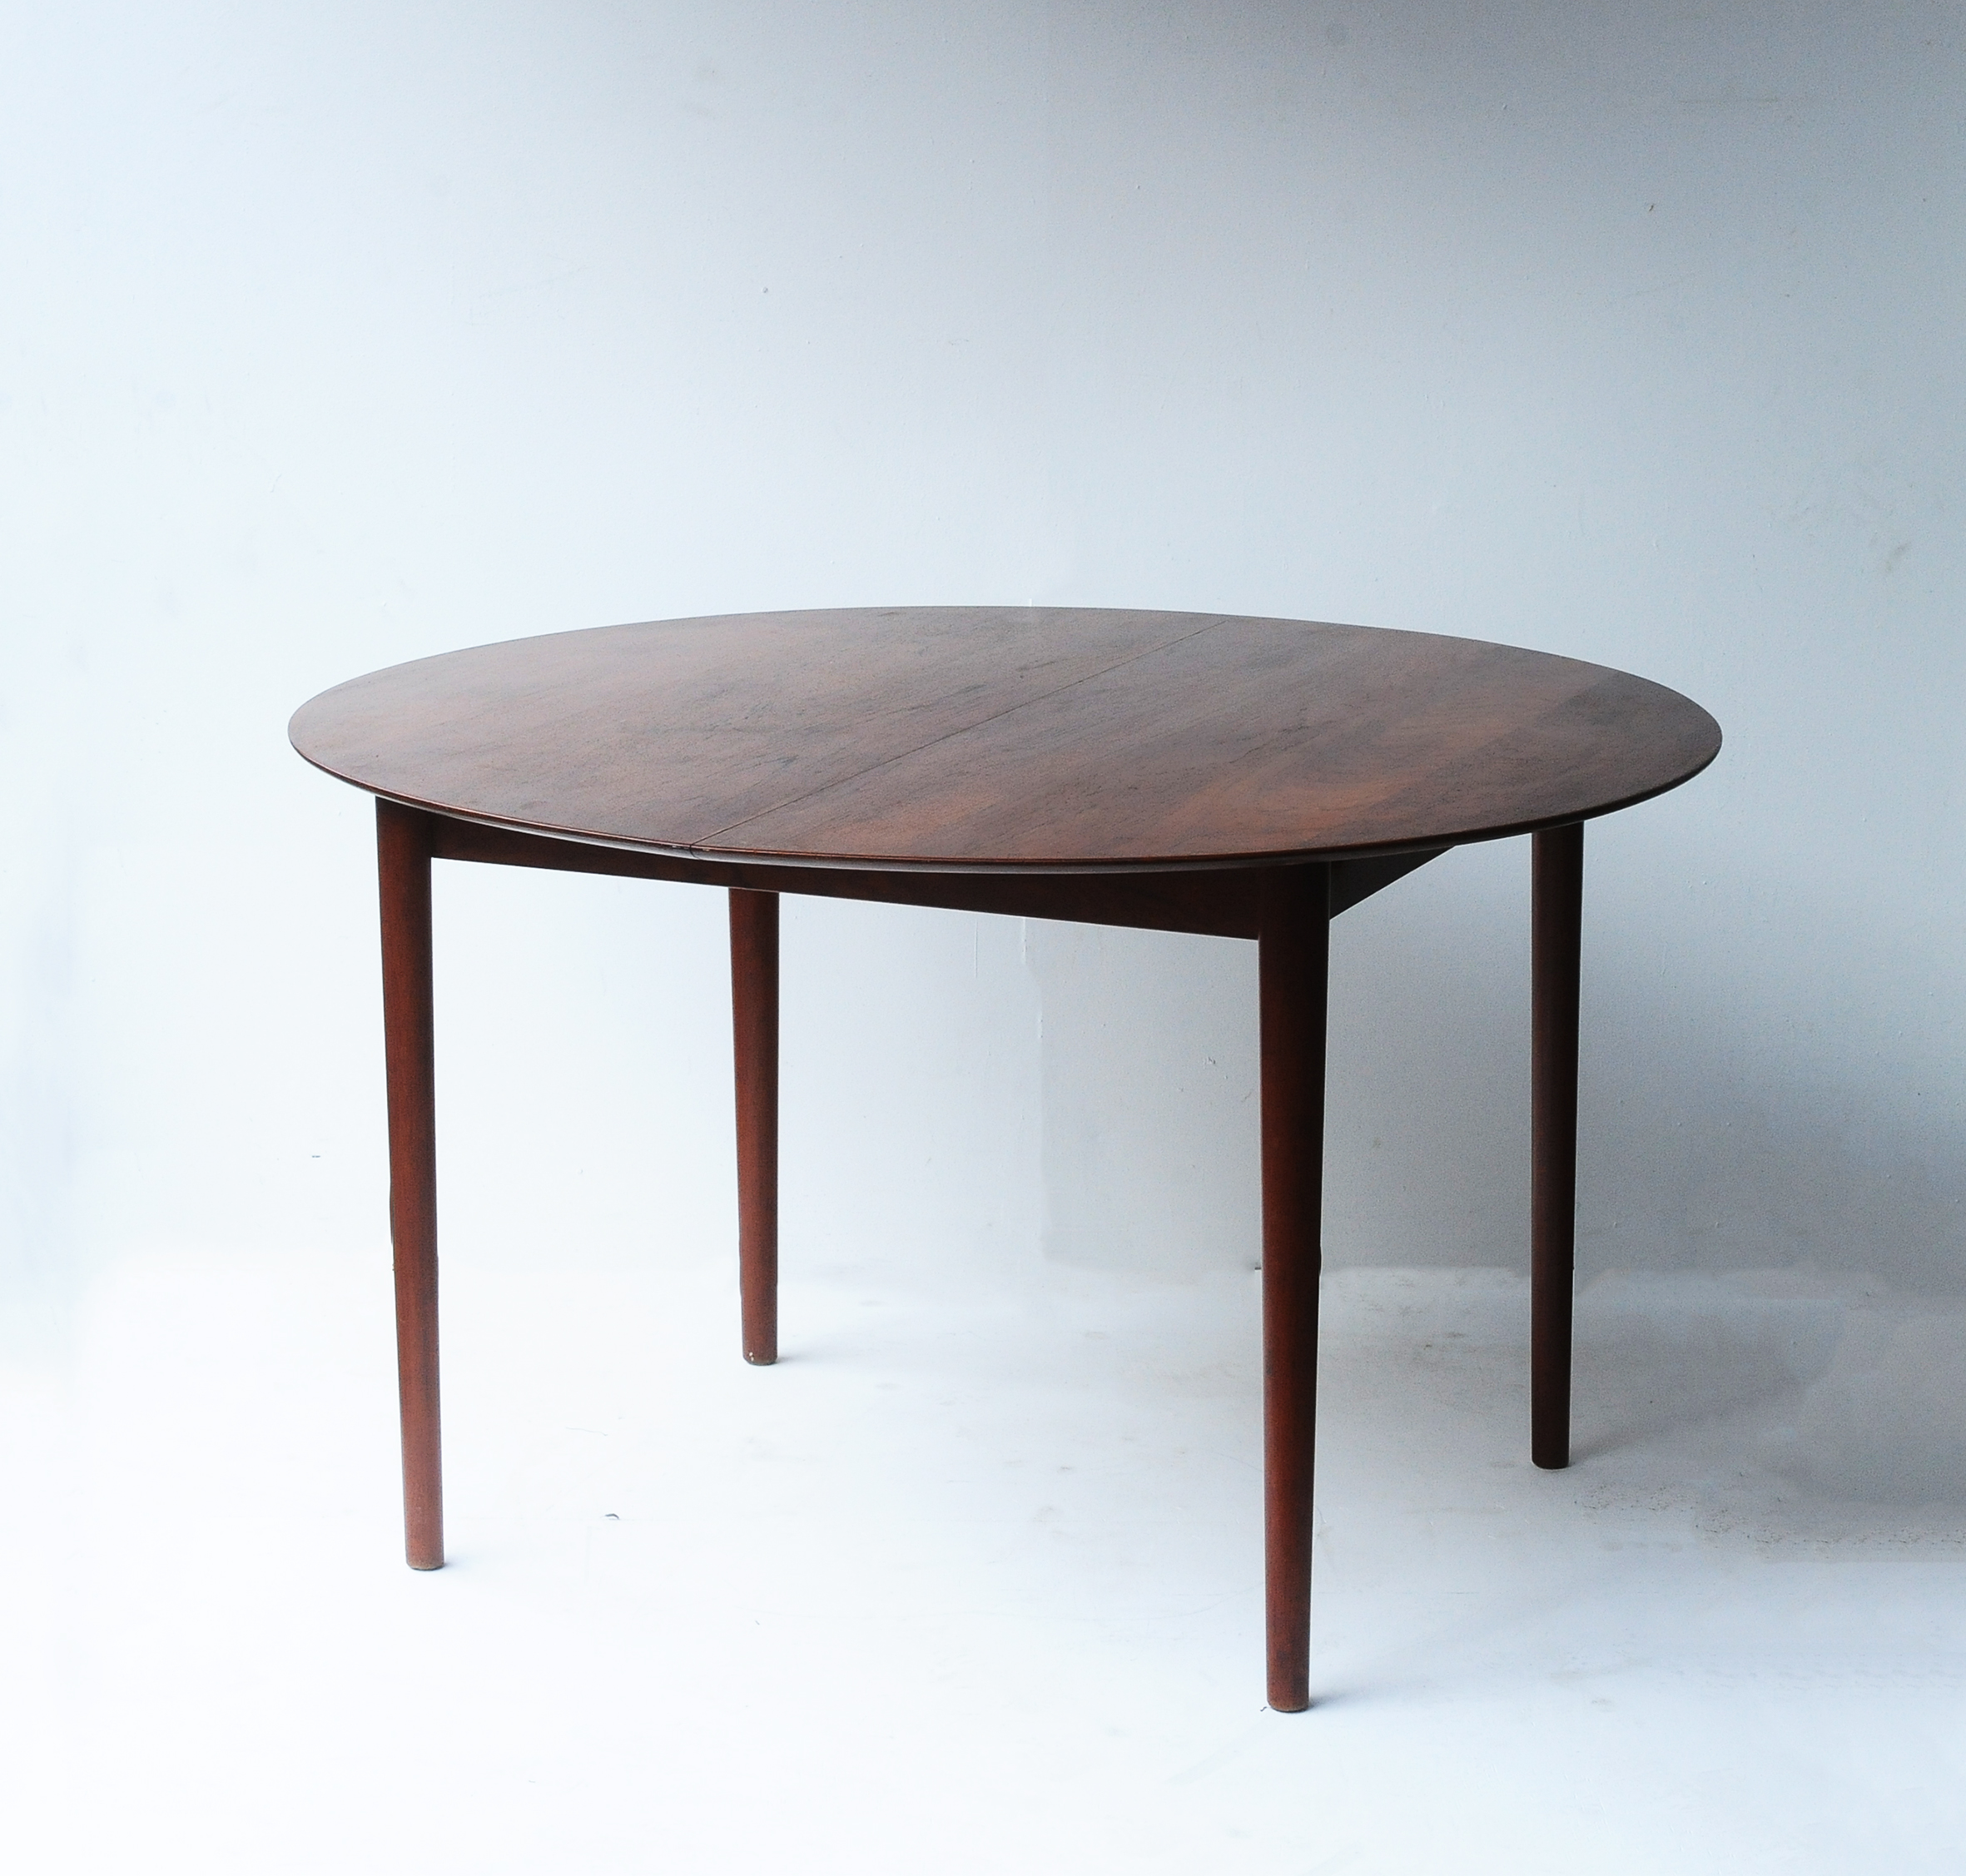 Table de salle manger scandinave | Paul Bert Serpette